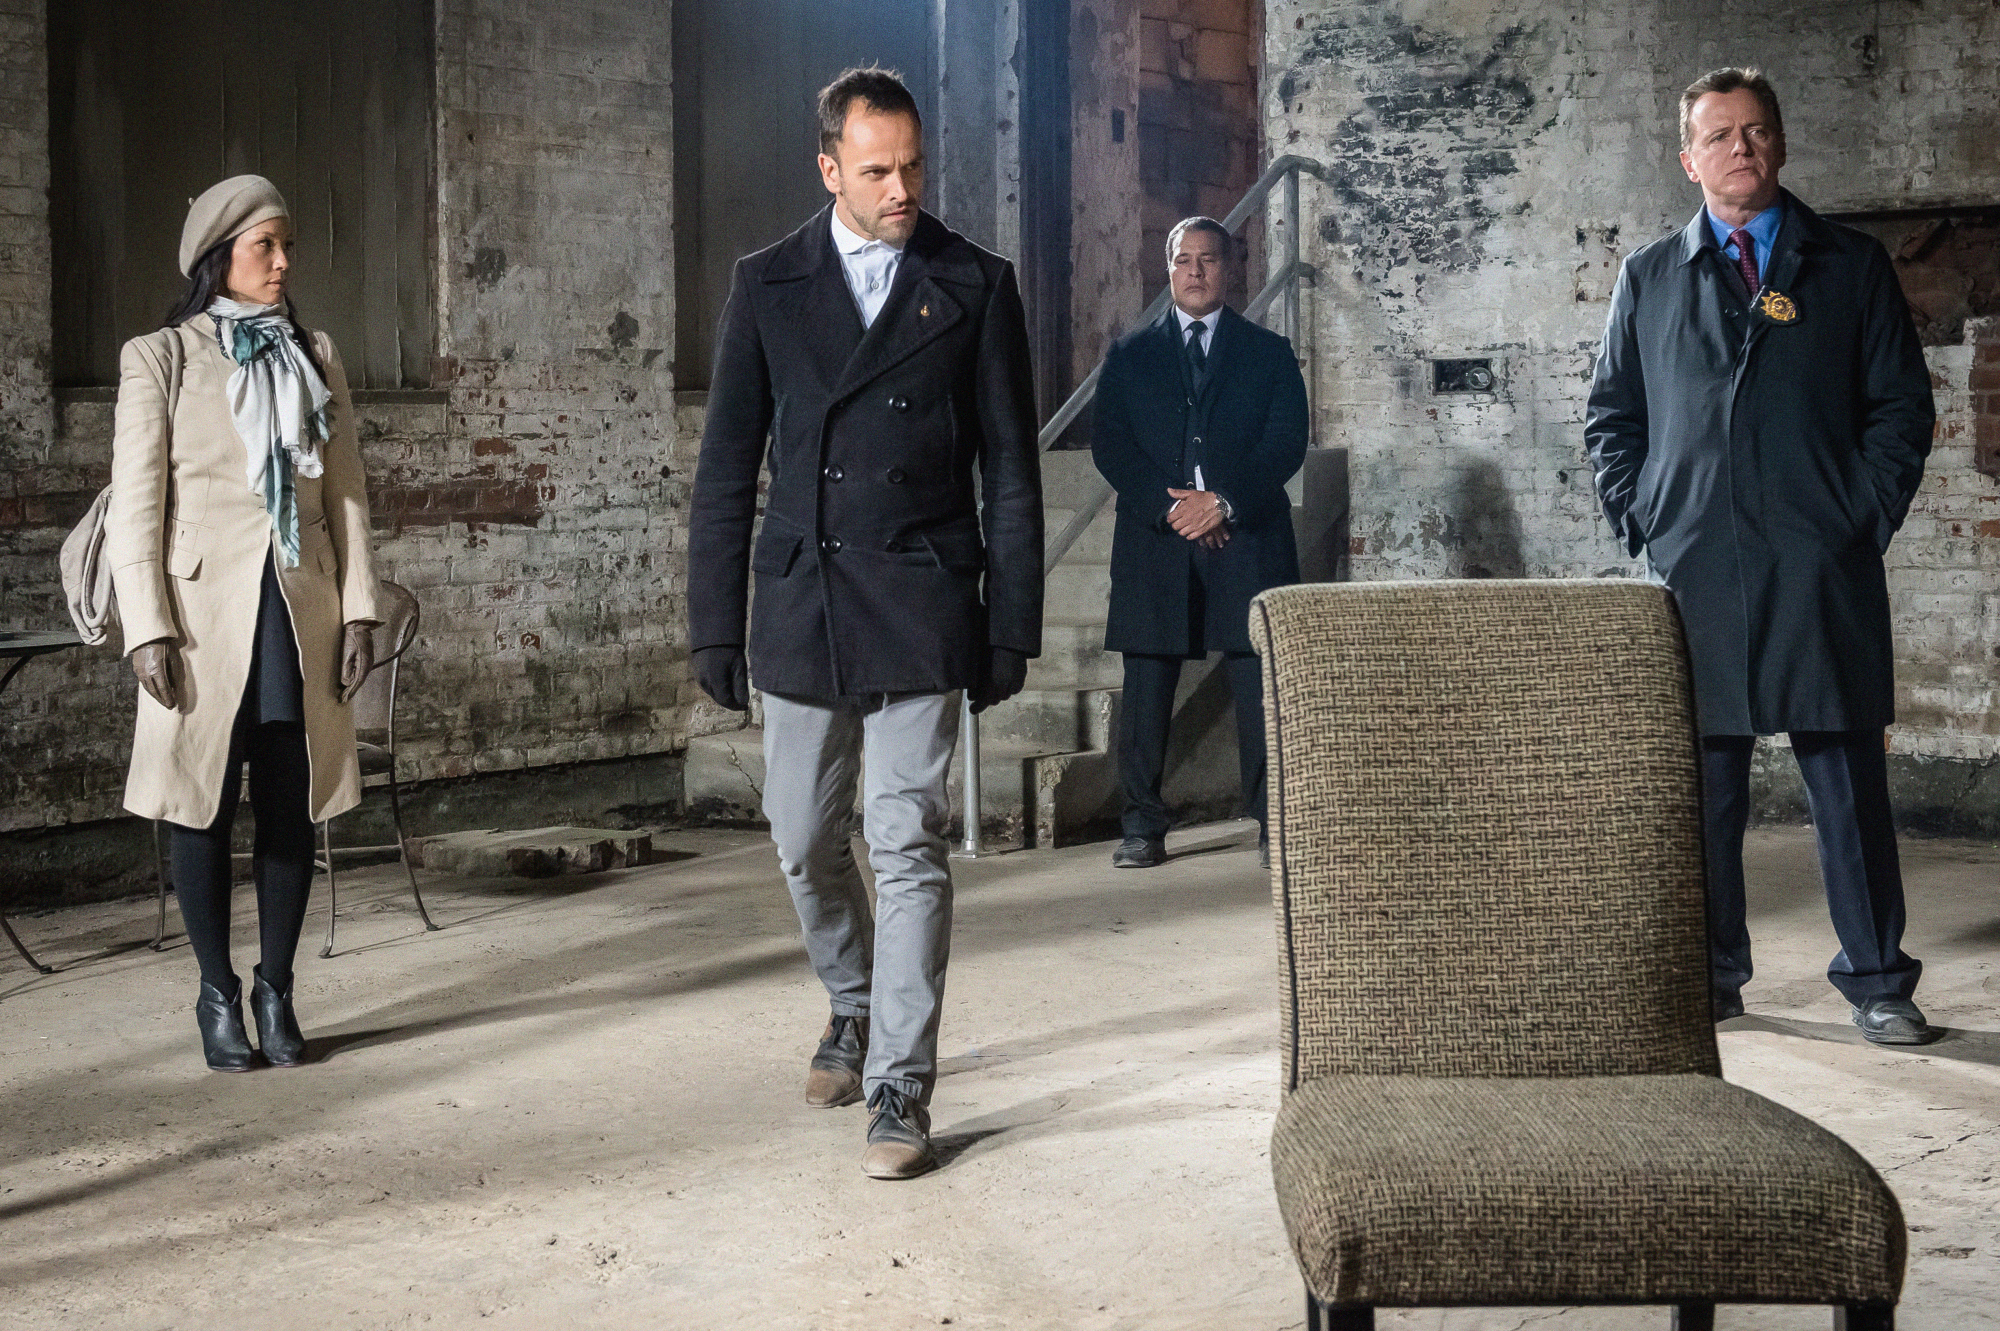 Holmes, Watson and Captain Gregson